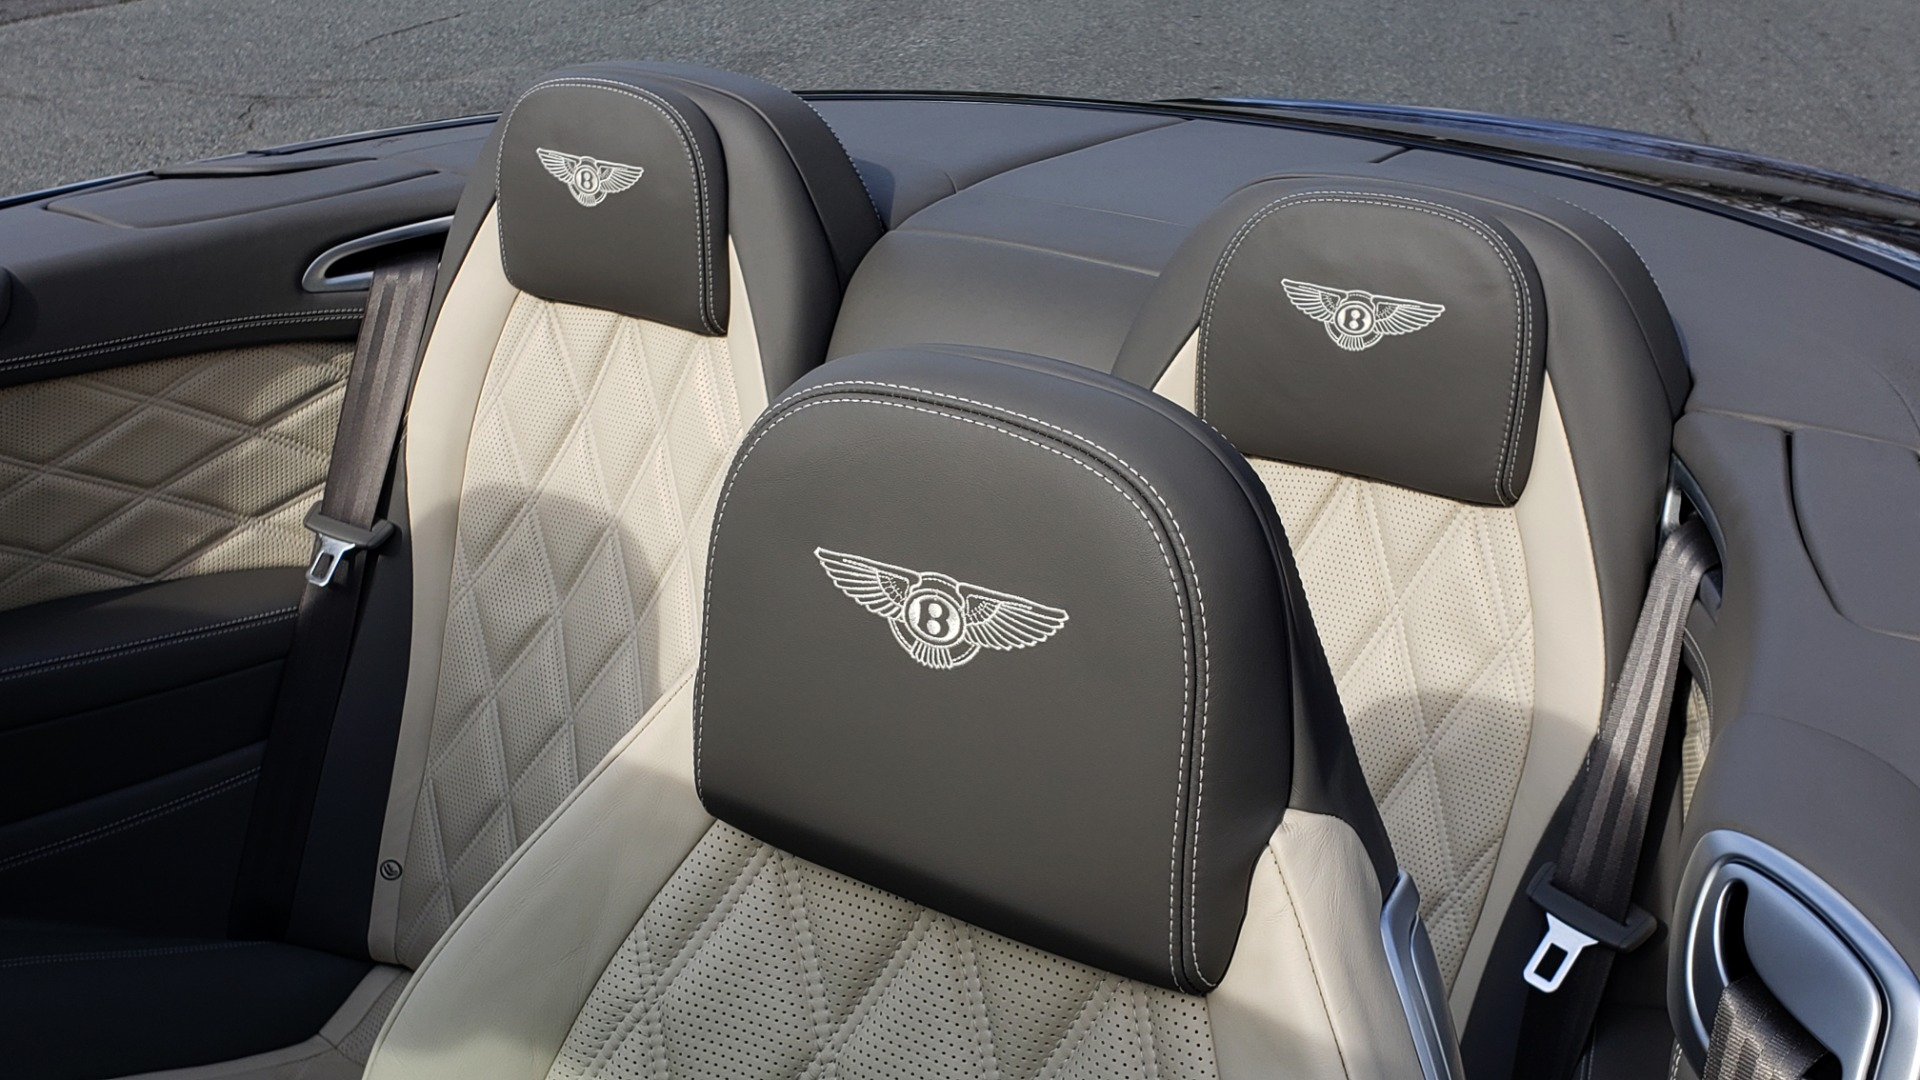 Used 2015 Bentley CONTINENTAL SPEED CONV / 6.0L W12 / NAV / VENT SEATS / REARVIEW for sale Sold at Formula Imports in Charlotte NC 28227 39